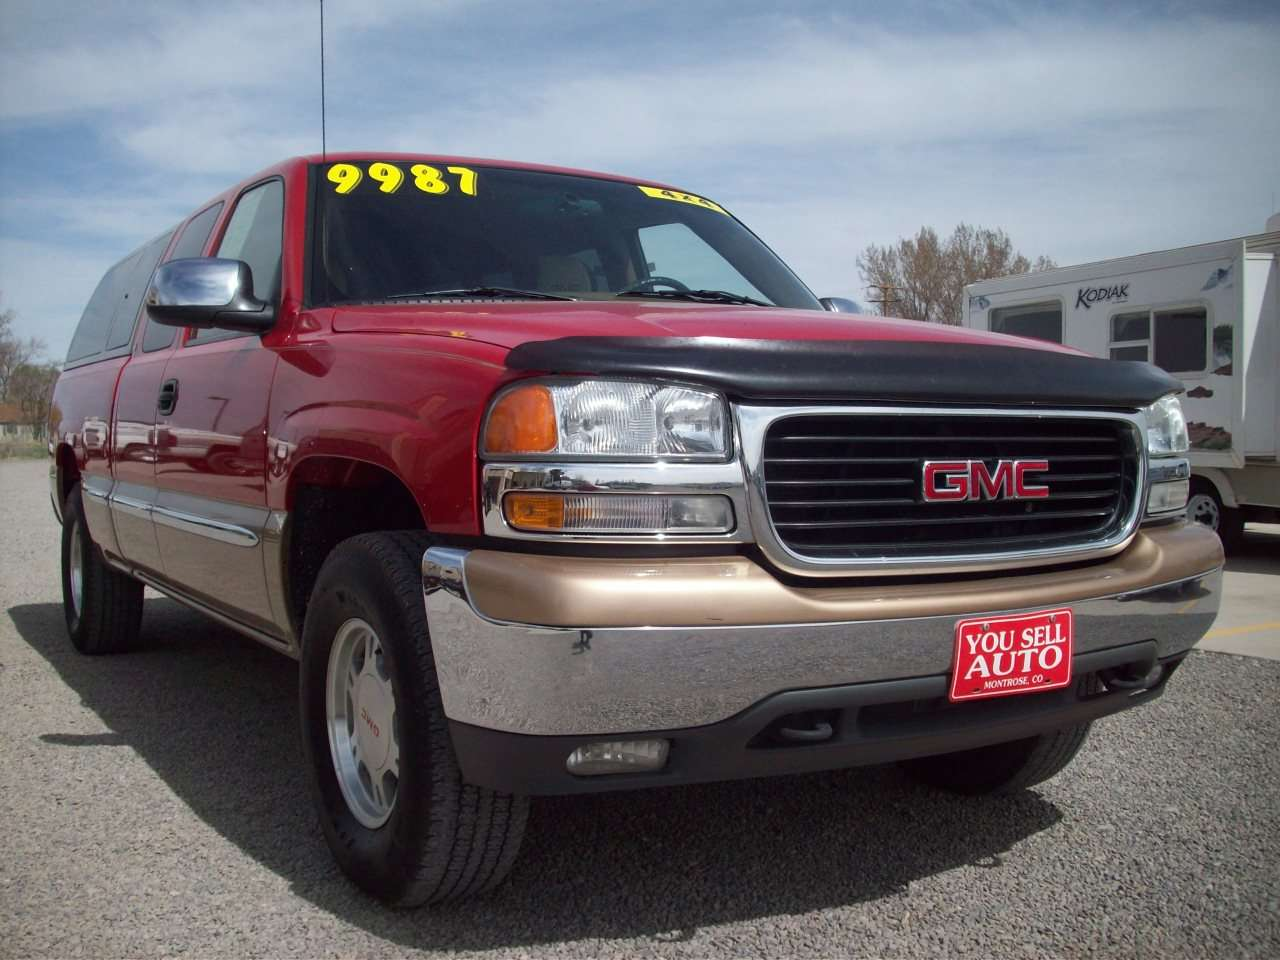 1999 Gmc Sierra 1500 Slt 4x4 Truck Sold You Sell Auto